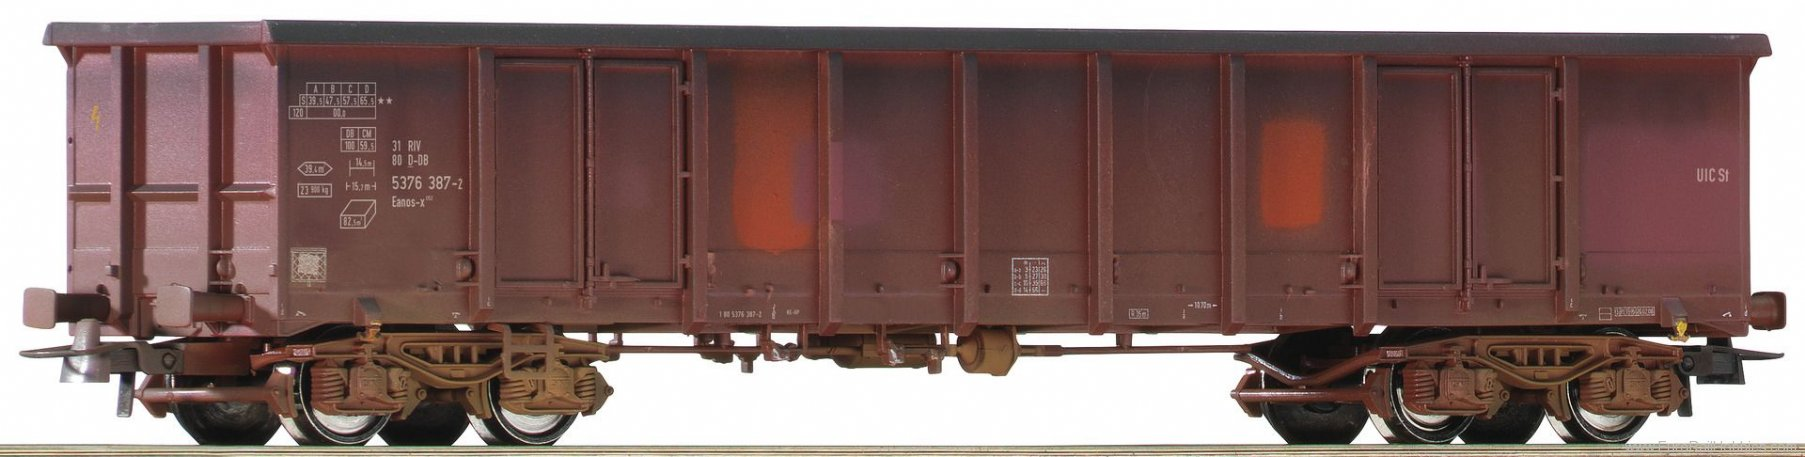 Roco 75998 31805376 467-2, open goods wagon weathered, D